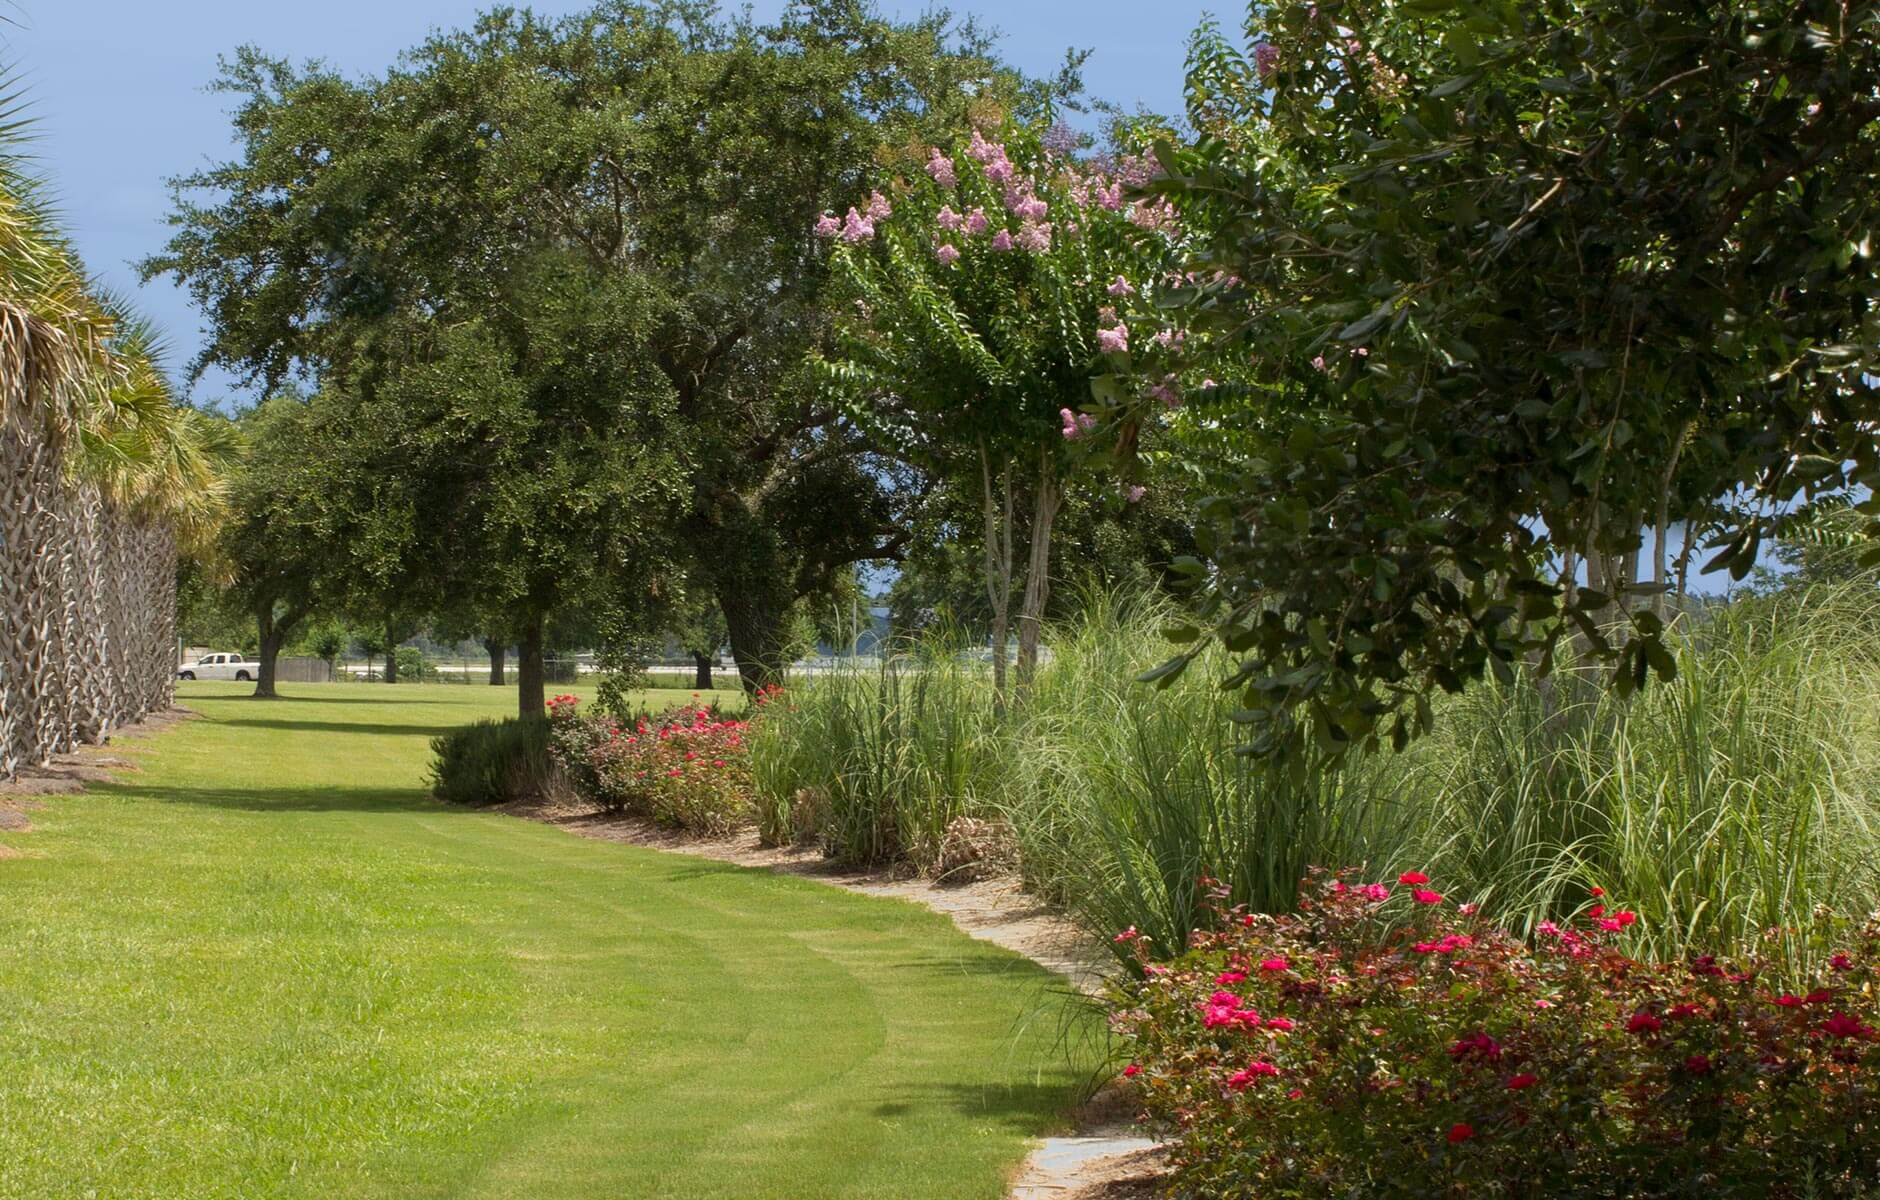 Palm trees, green grass and pampas grass decorate the landscape of this property